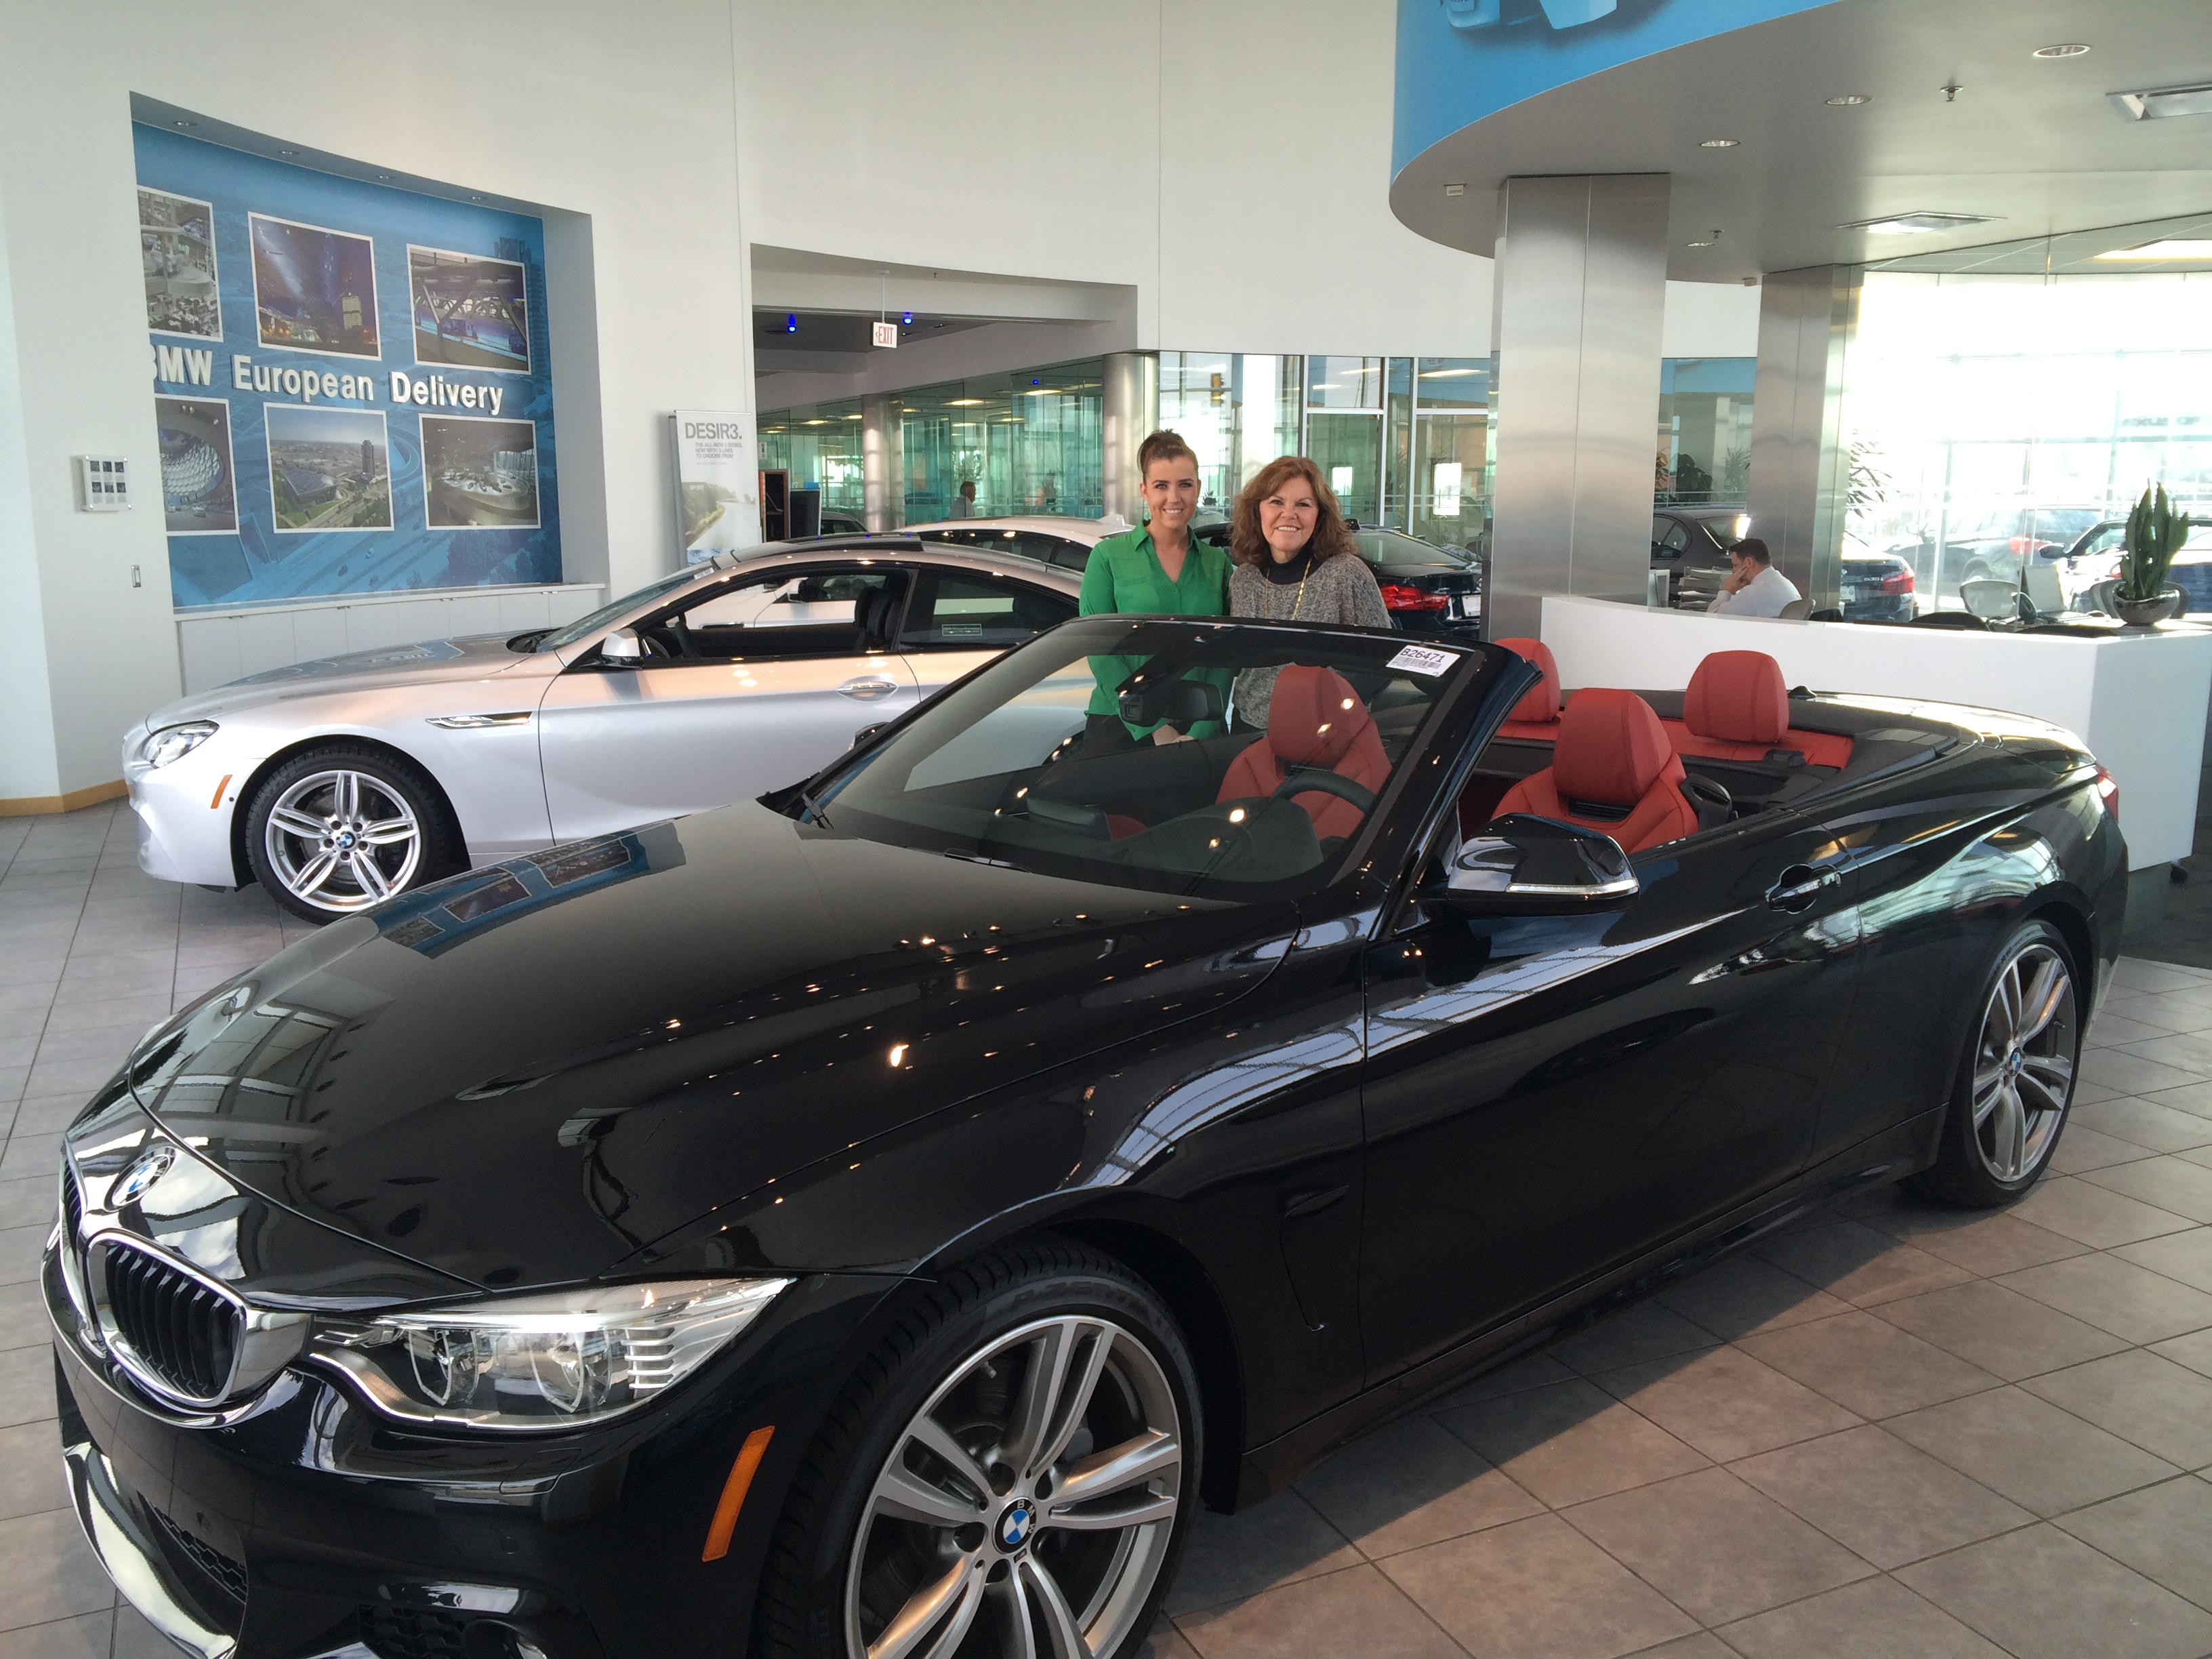 Bill Jacobs BMW Announces Arrival of 2014 BMW 4 Series Convertible